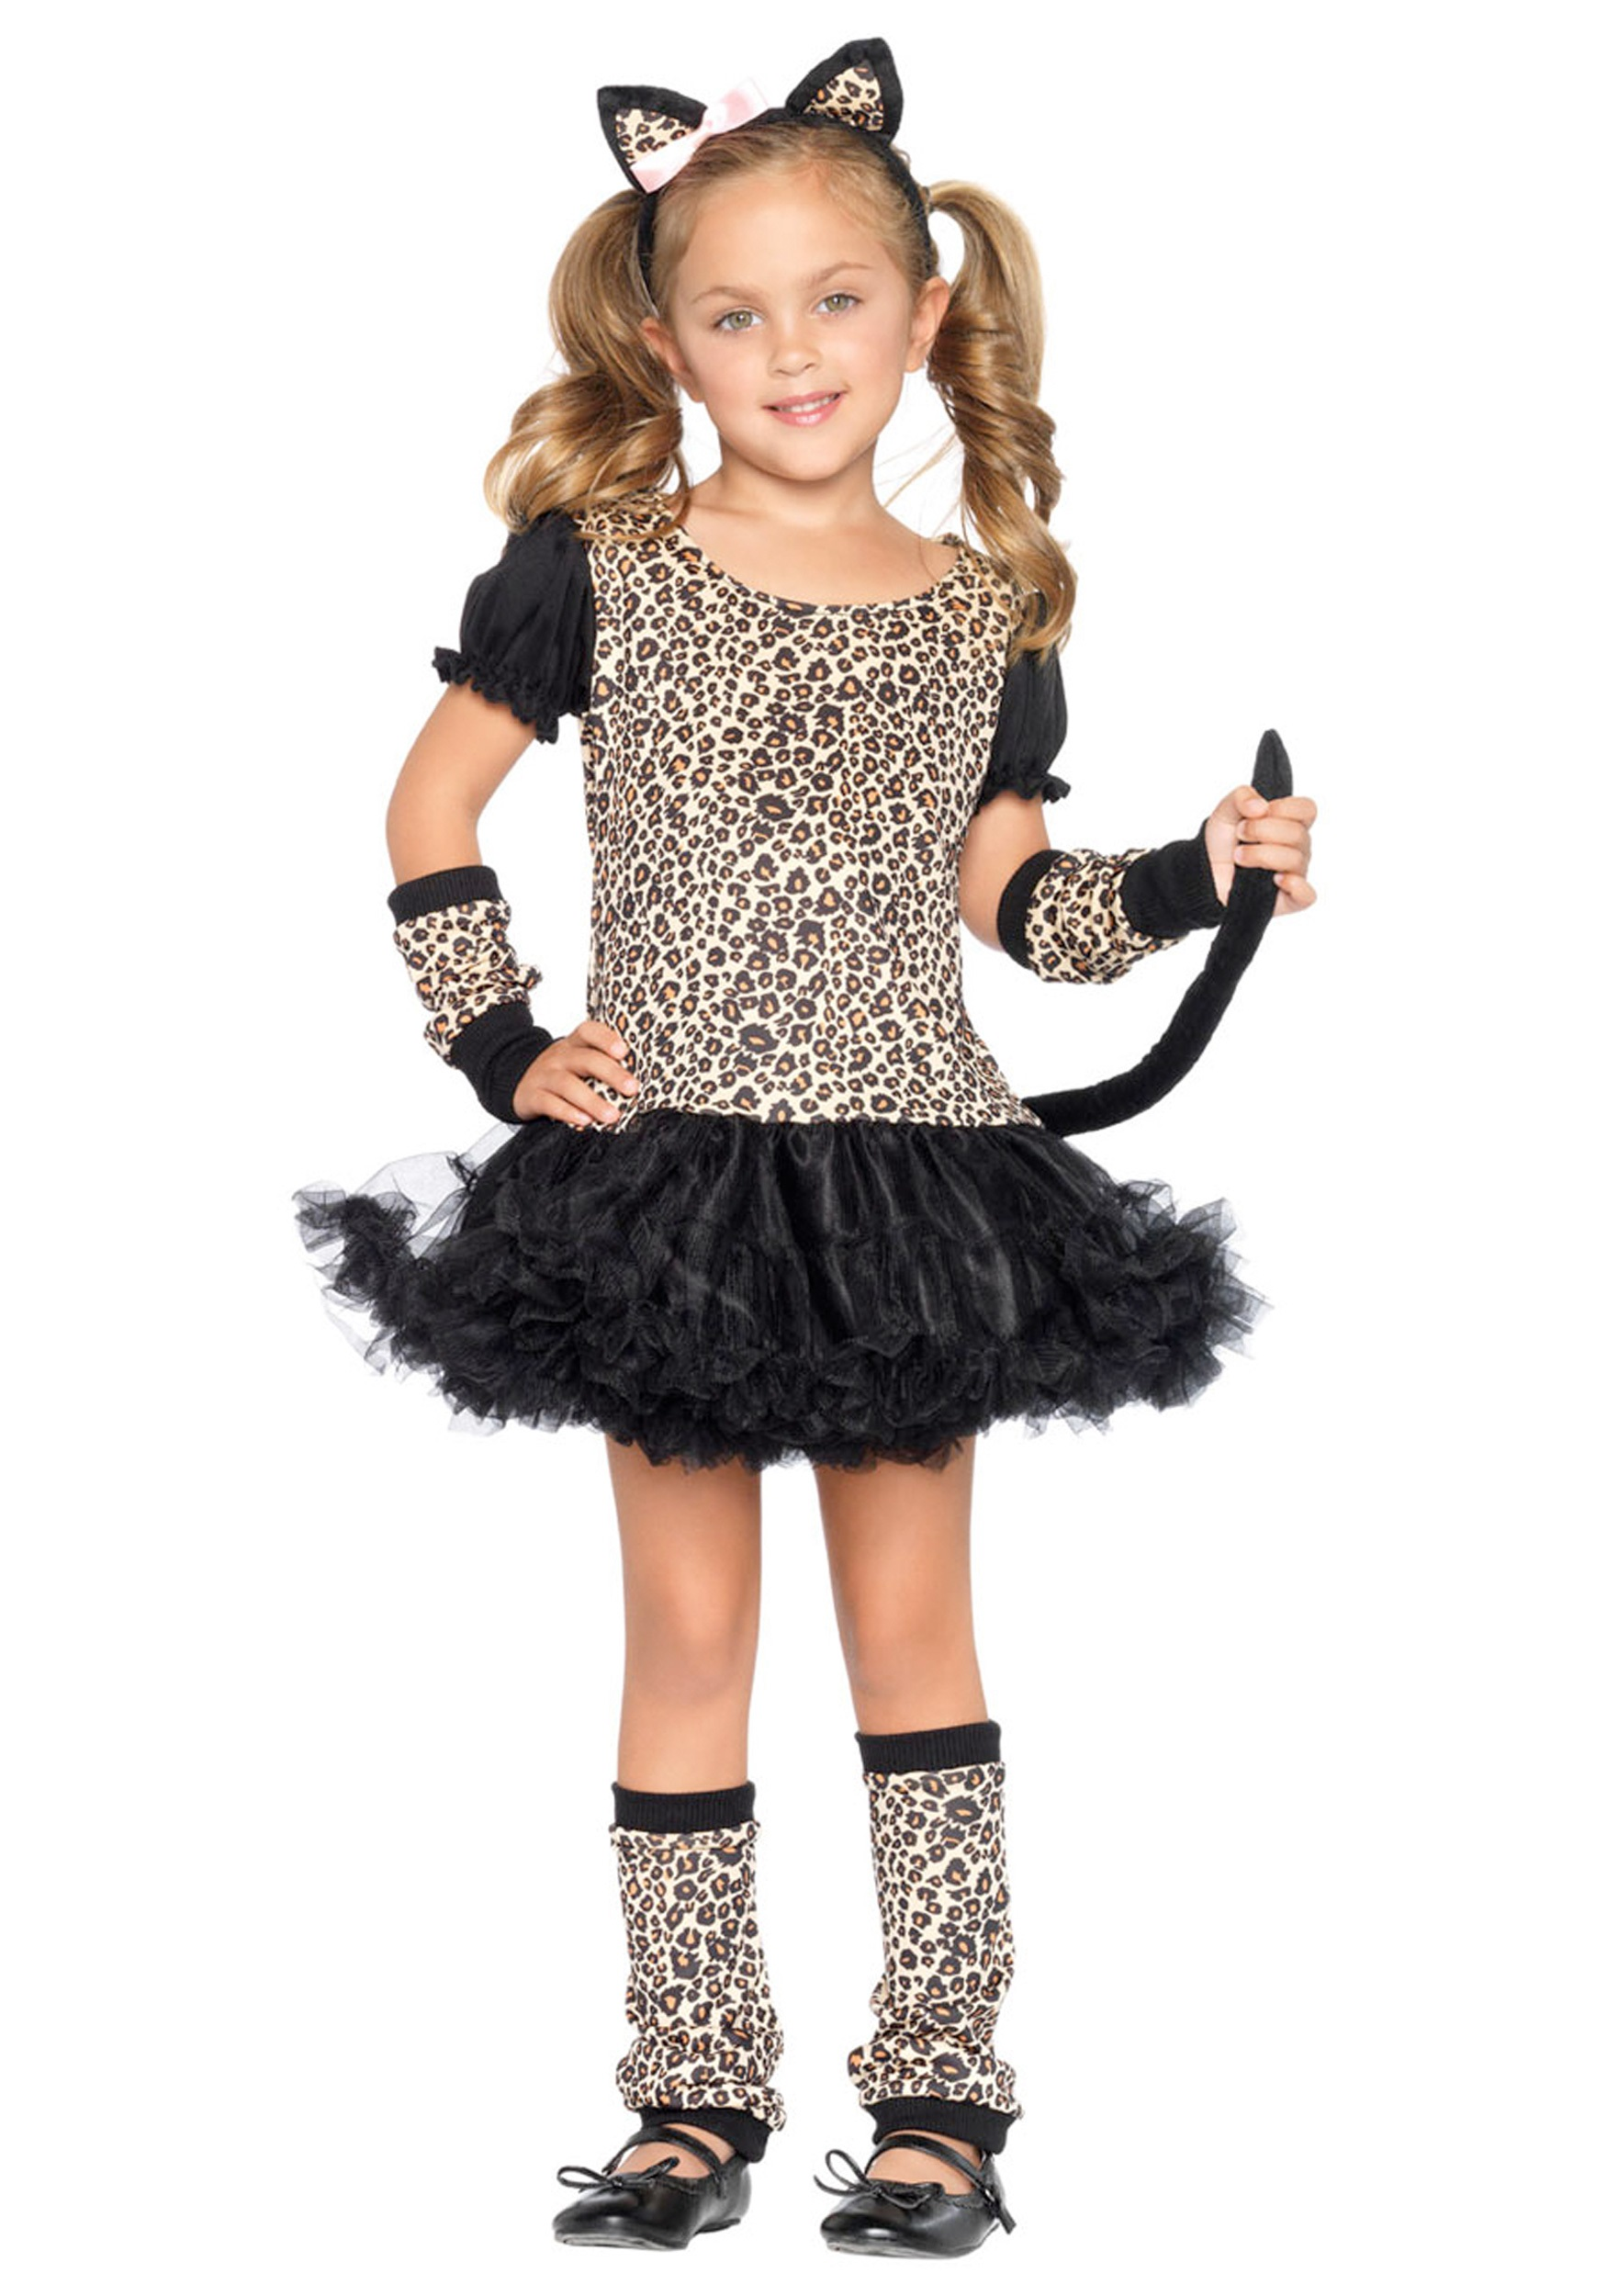 Kids Cat Tutu Costume  sc 1 st  Halloween Costume & Kids Cat Tutu Costume - Girls Cat Costumes